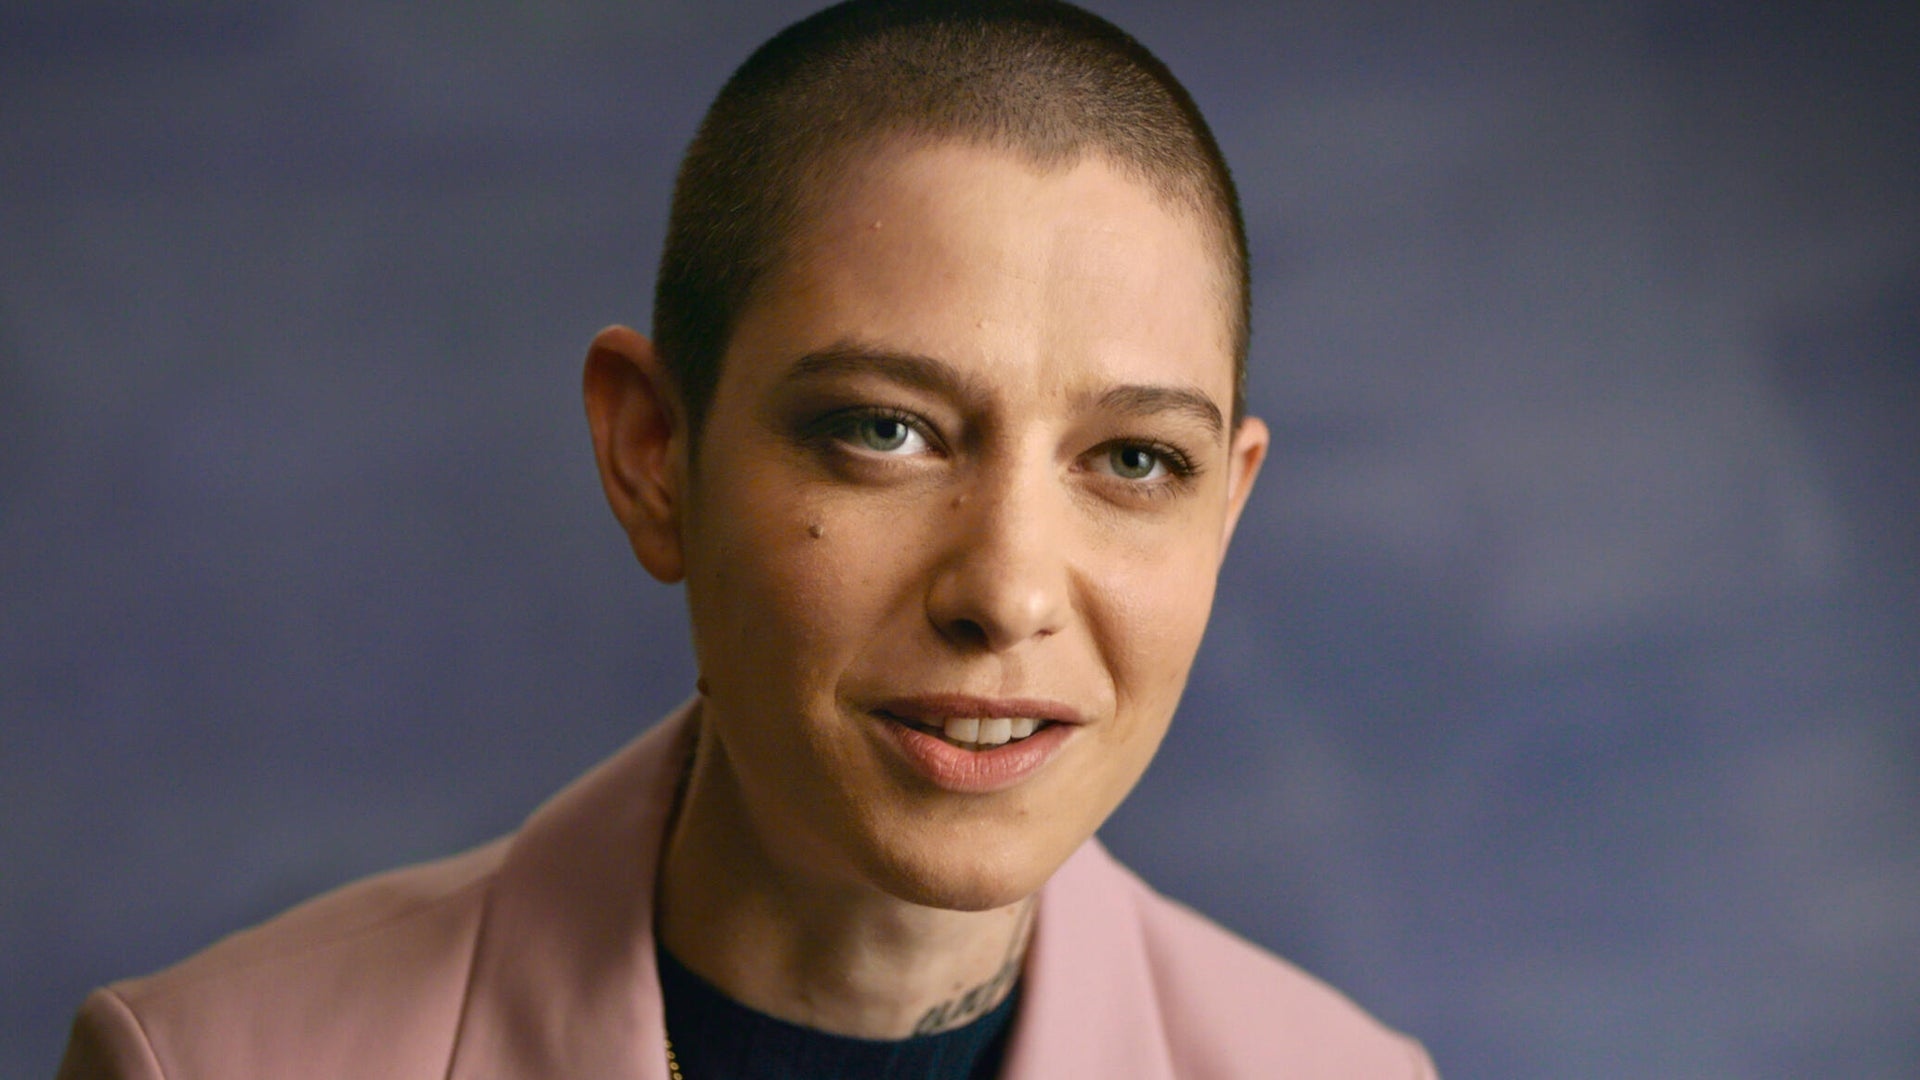 Asia Kate Dillon, Visible: Out on Television